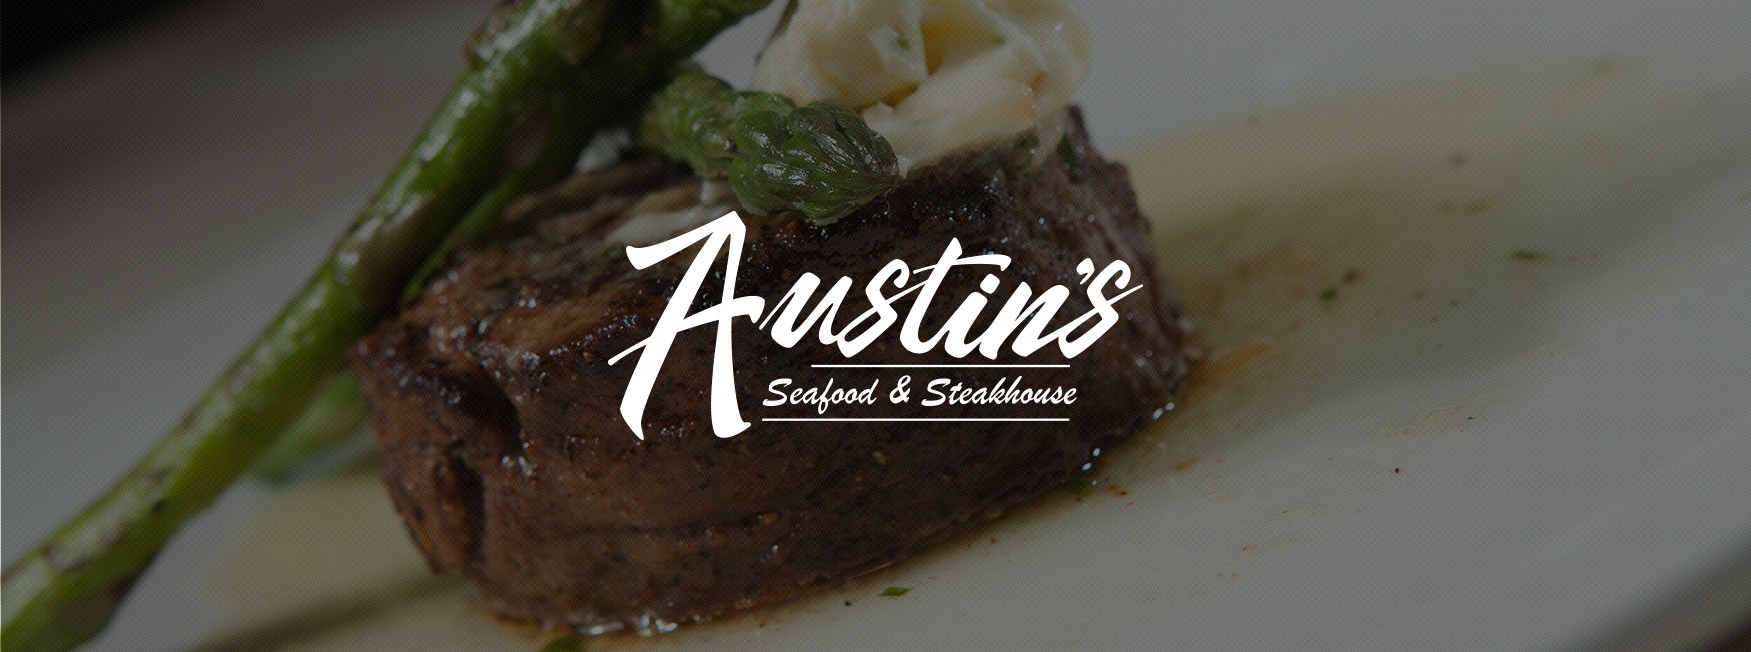 Austin S Restaurant In Metairie La